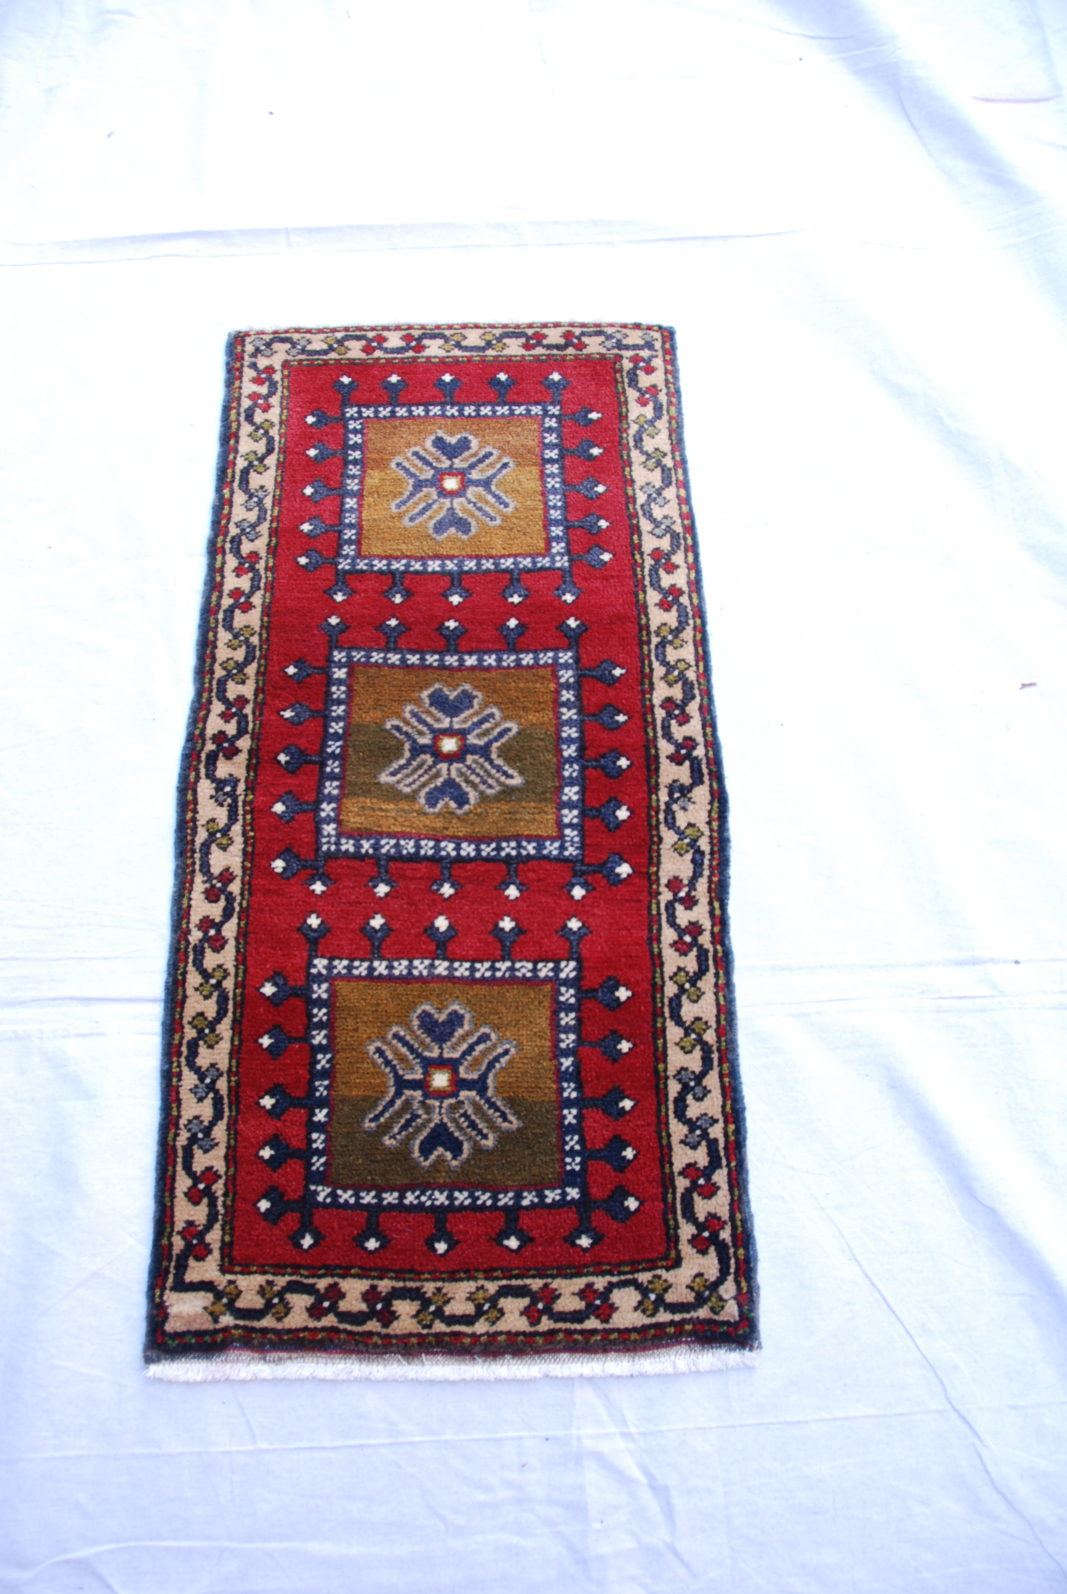 Adana Nomadic Turkish wool on wool carpet approximately 50 years old 1.02 x 0.48 $295.